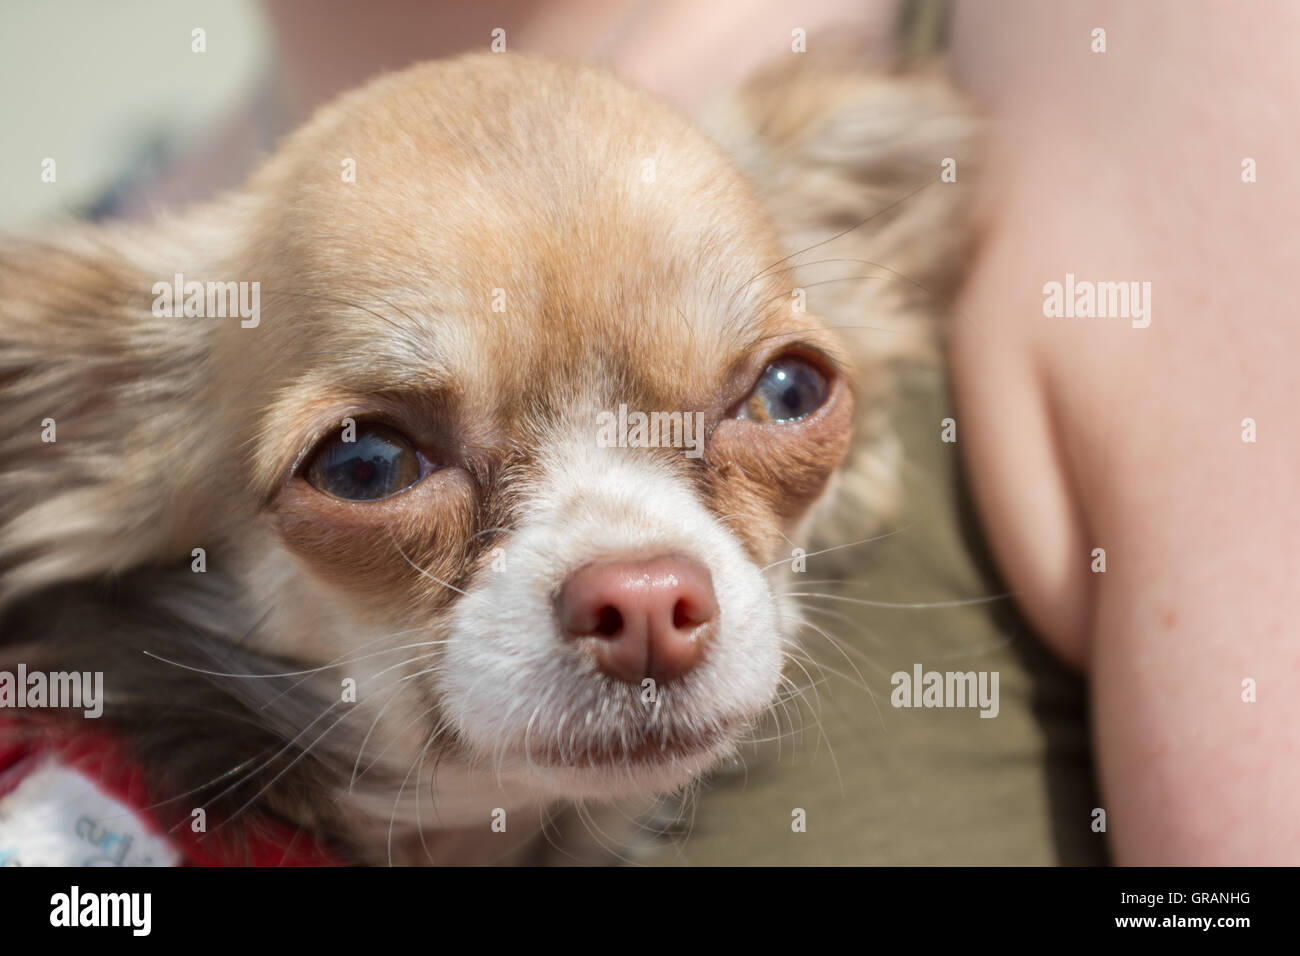 Portrait Of A Chihuahua Dog - Stock Image